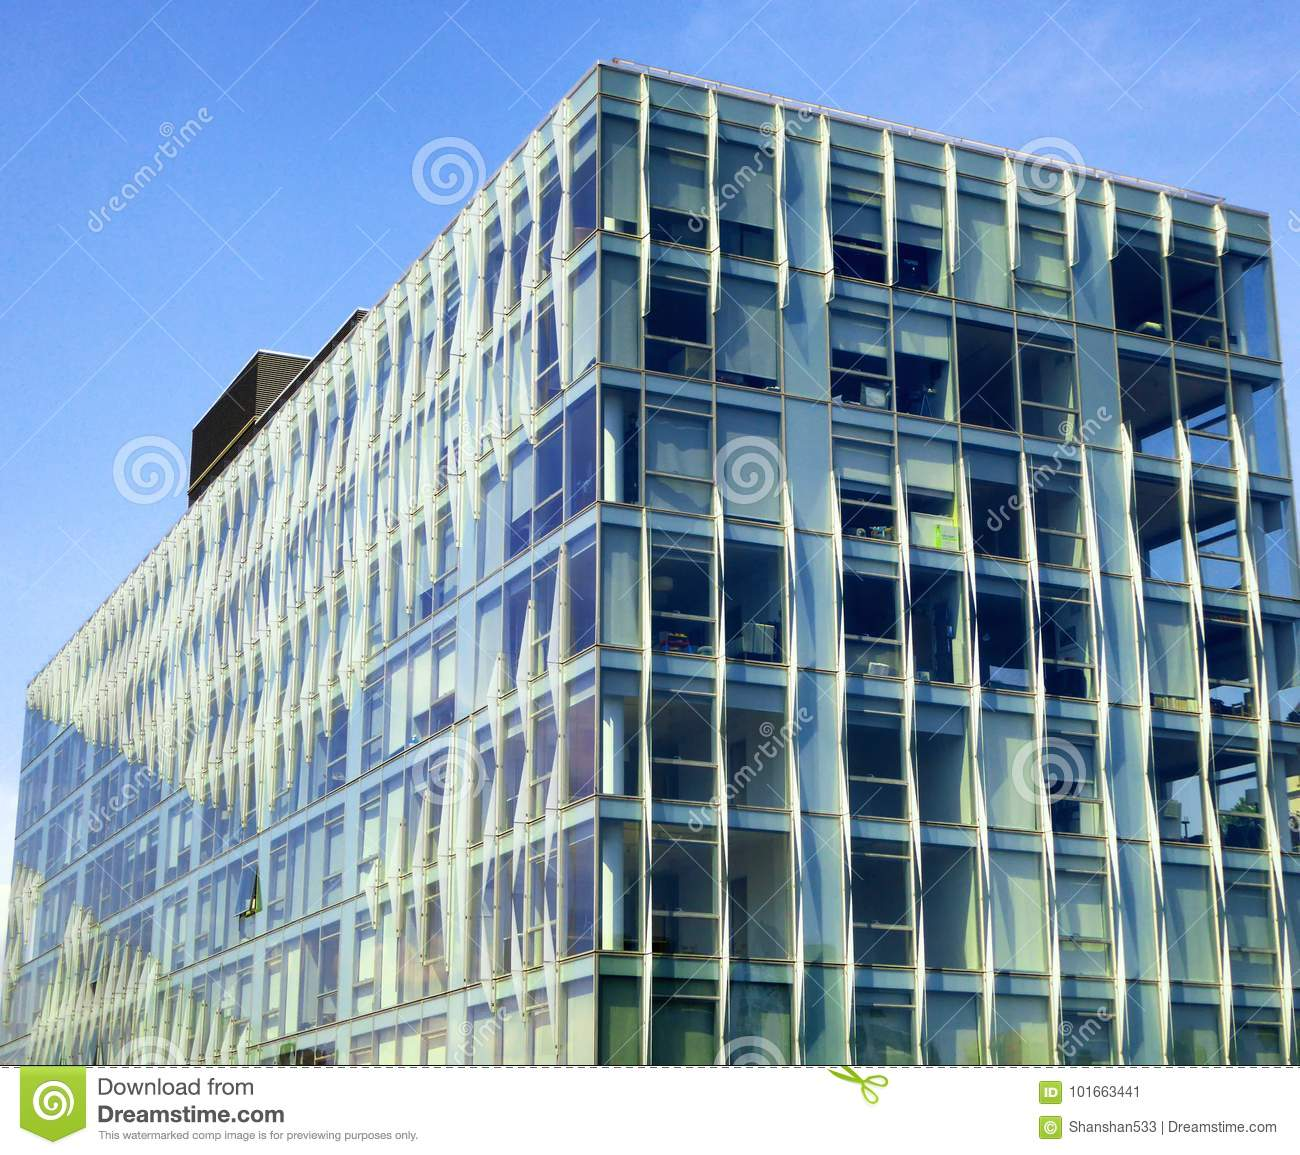 Glass exterior modern office Facade Tall Modern Office Buildings Glass Exterior In New York Street United States Dreamstimecom New York City Office Buildings Glass Exterior Stock Image Image Of